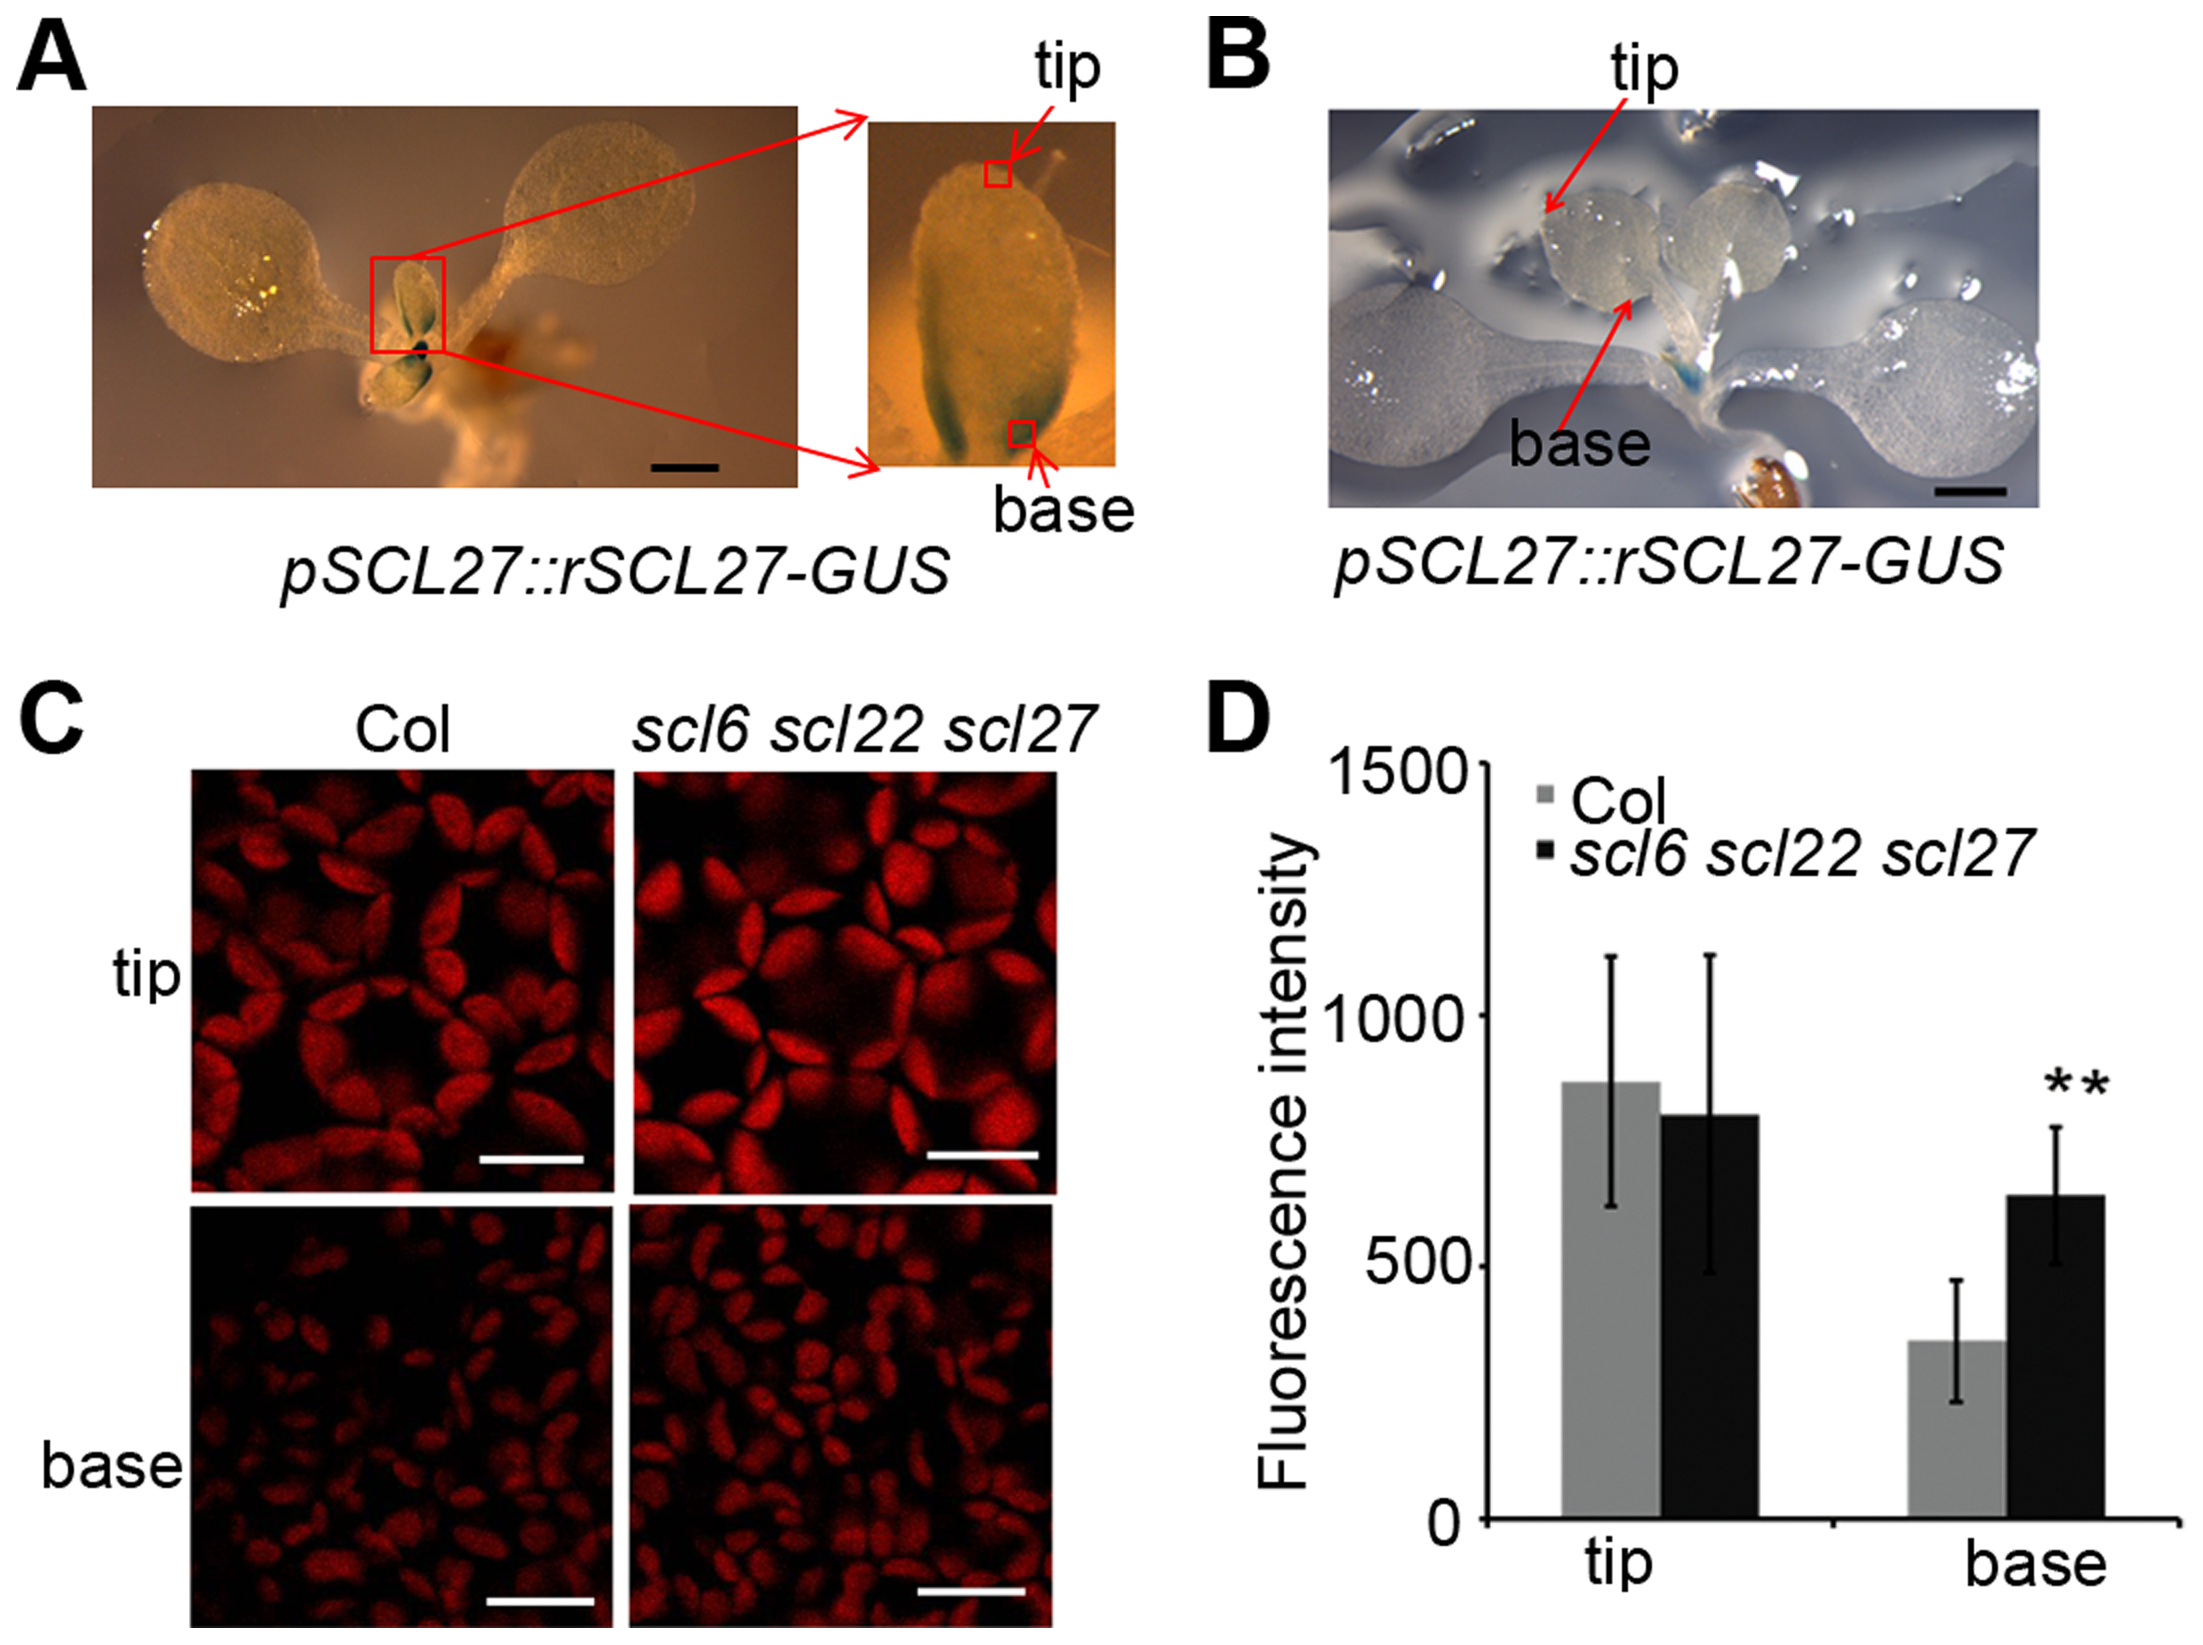 SCL-GUS accumulation and chlorophyll fluorescence intensity at the early stage of leaf growth.